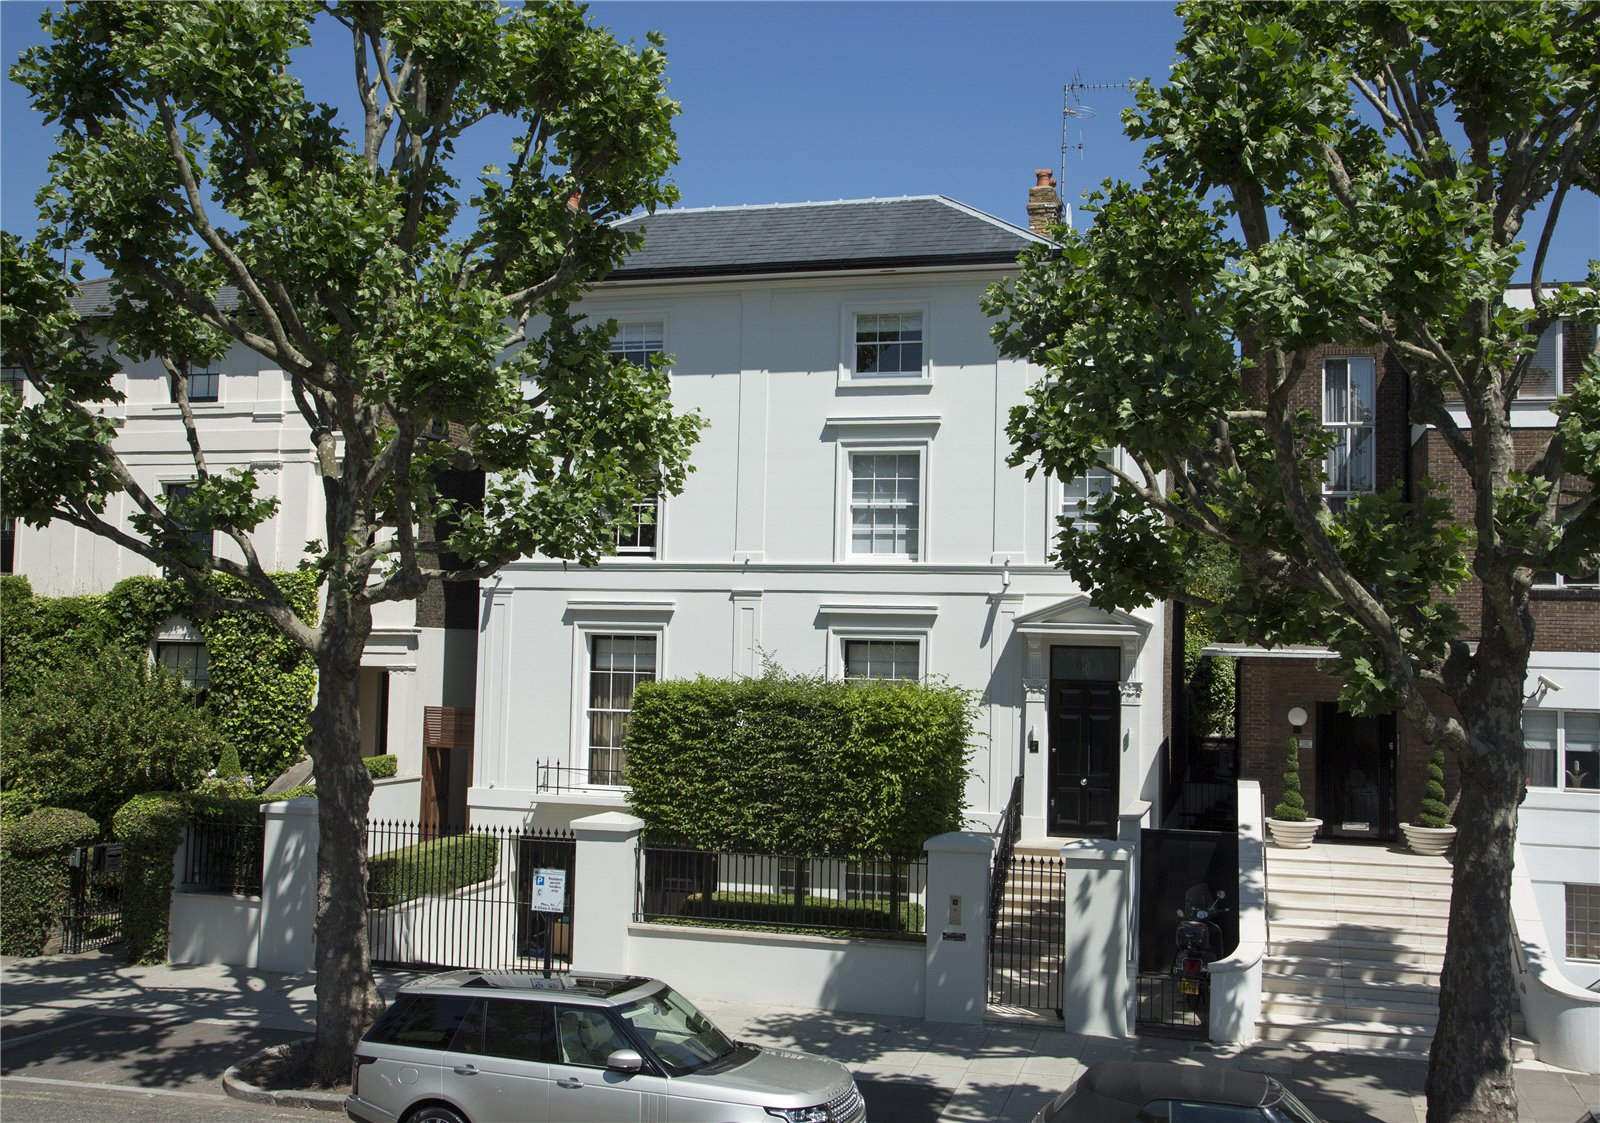 Detached House for Sale at Hamilton Terrace, St John's Wood, London, NW8 Hamilton Terrace, St John's Wood, London, NW8